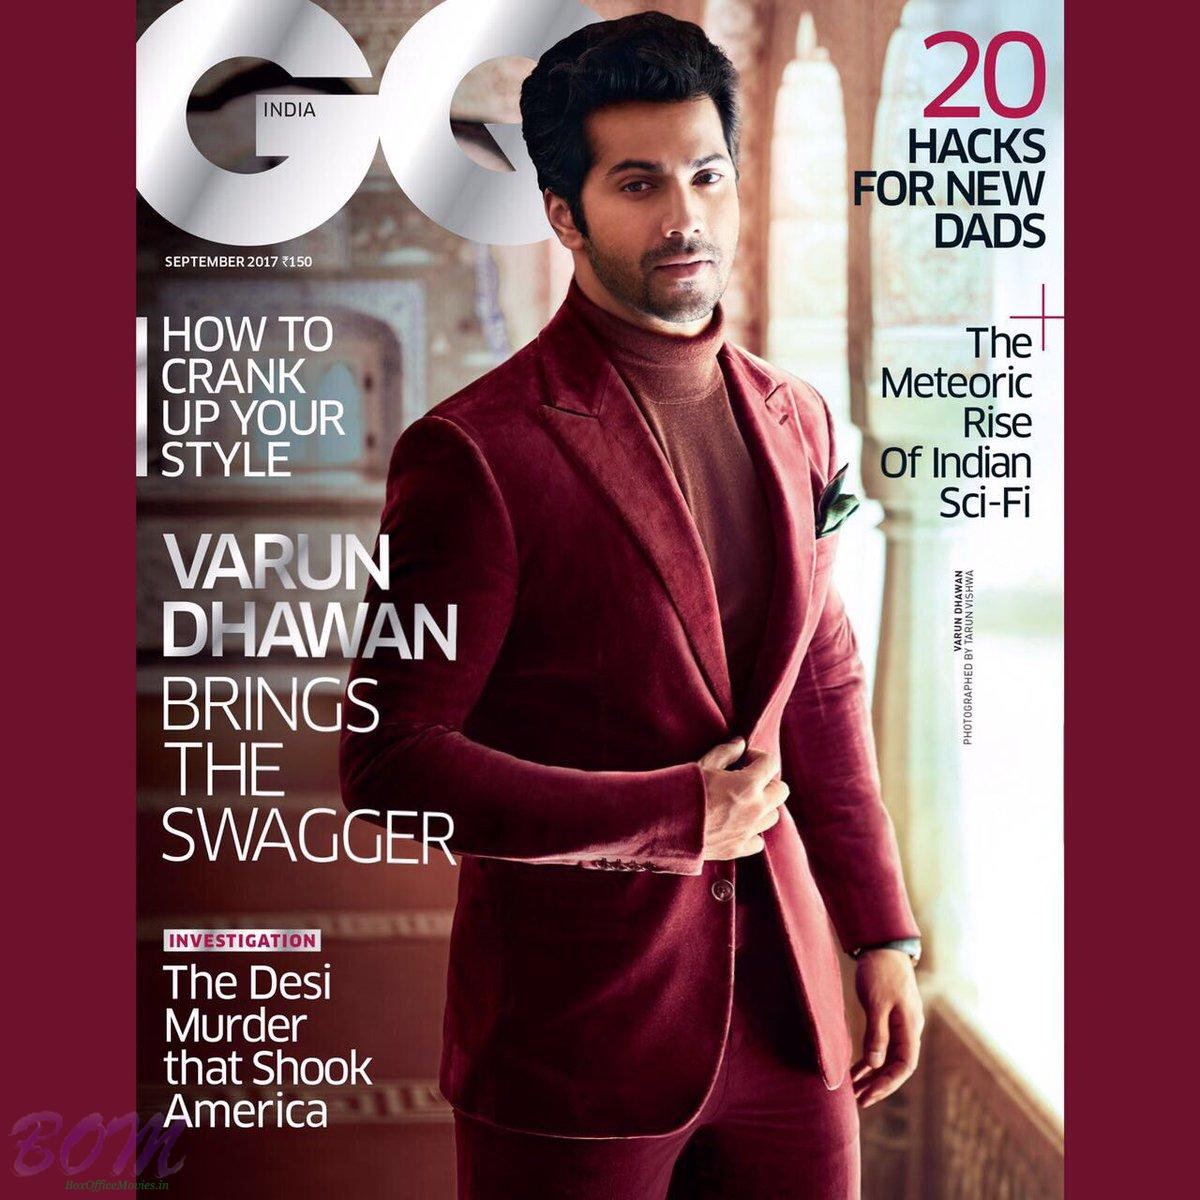 Varun Dhawan cover boy for GQIndia magazine for Sep 2017 issue